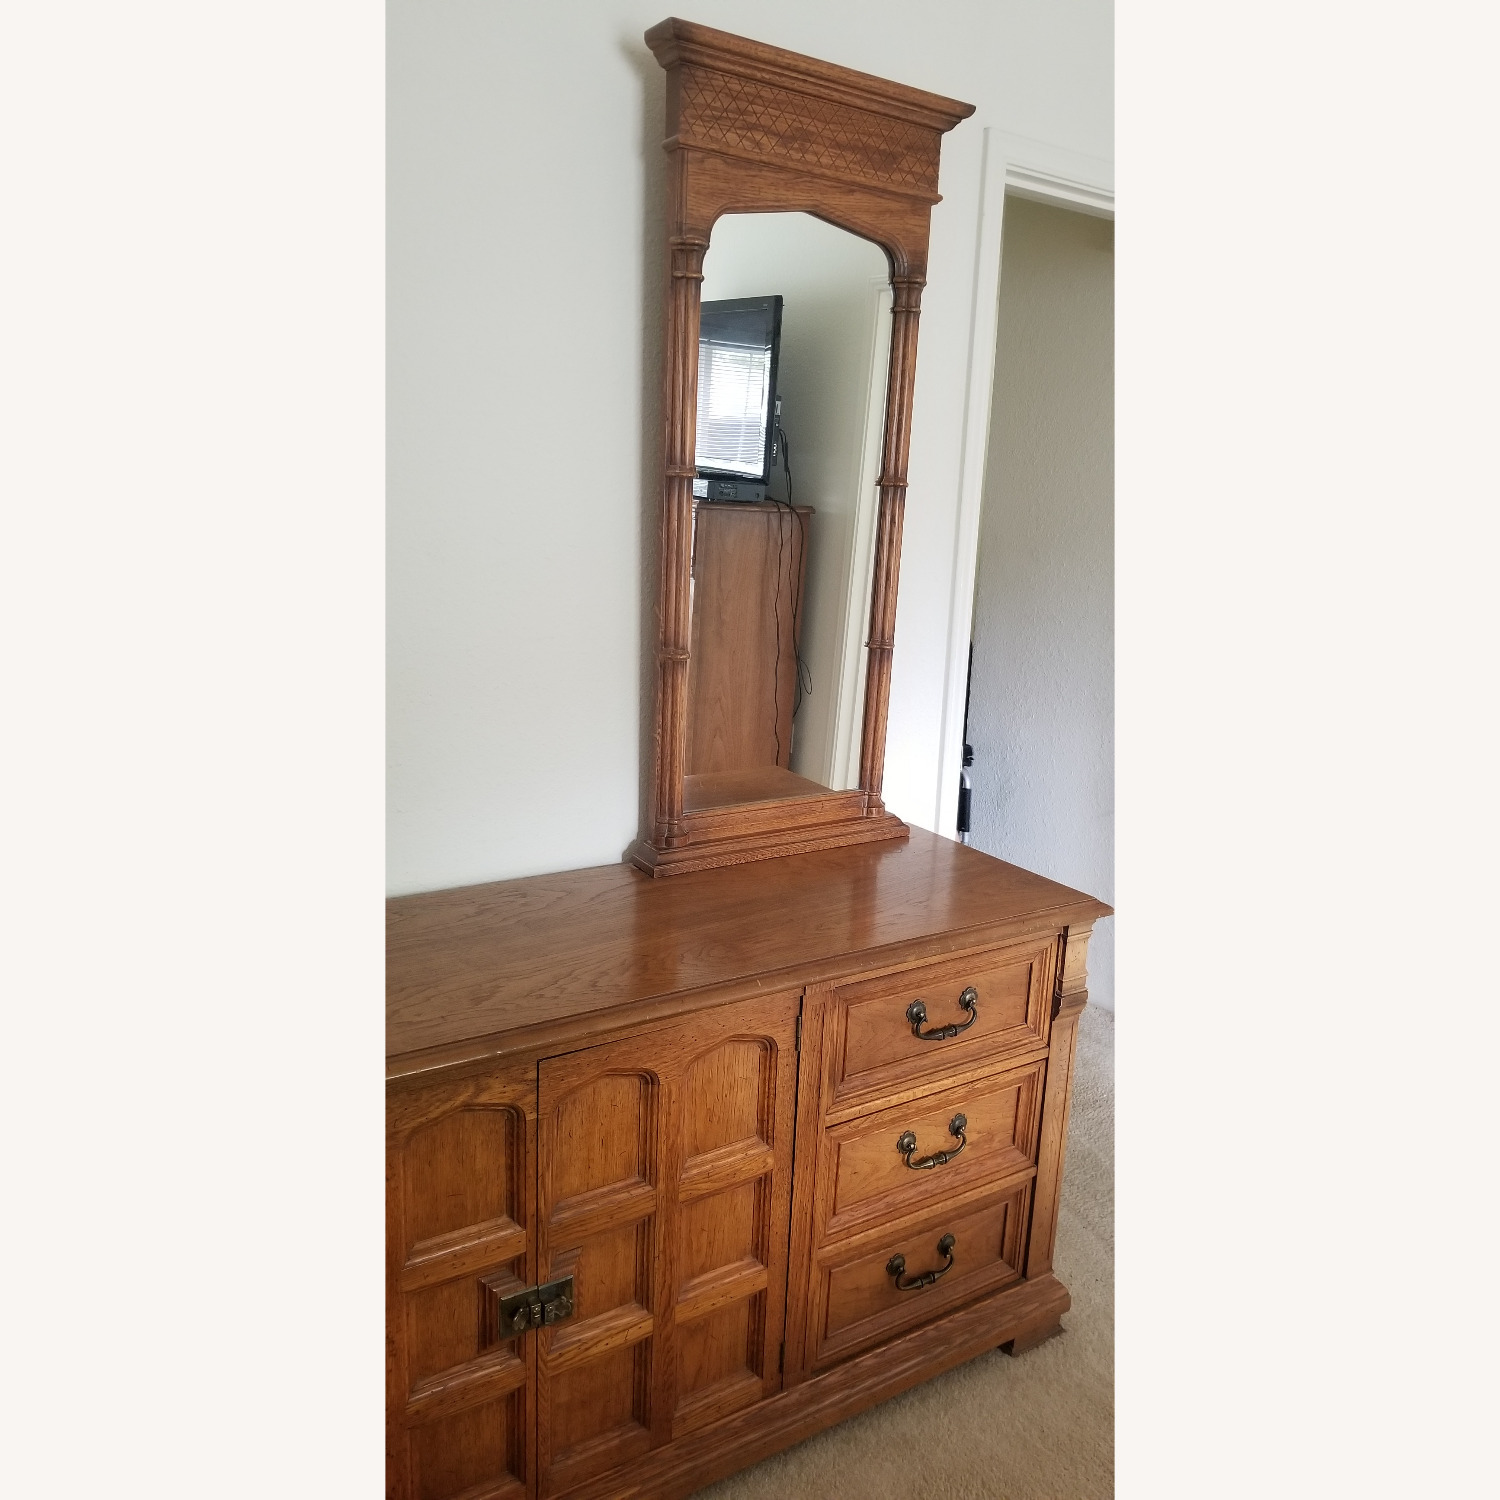 Vintage Drexel Dresser with two Large Mirrors - image-2